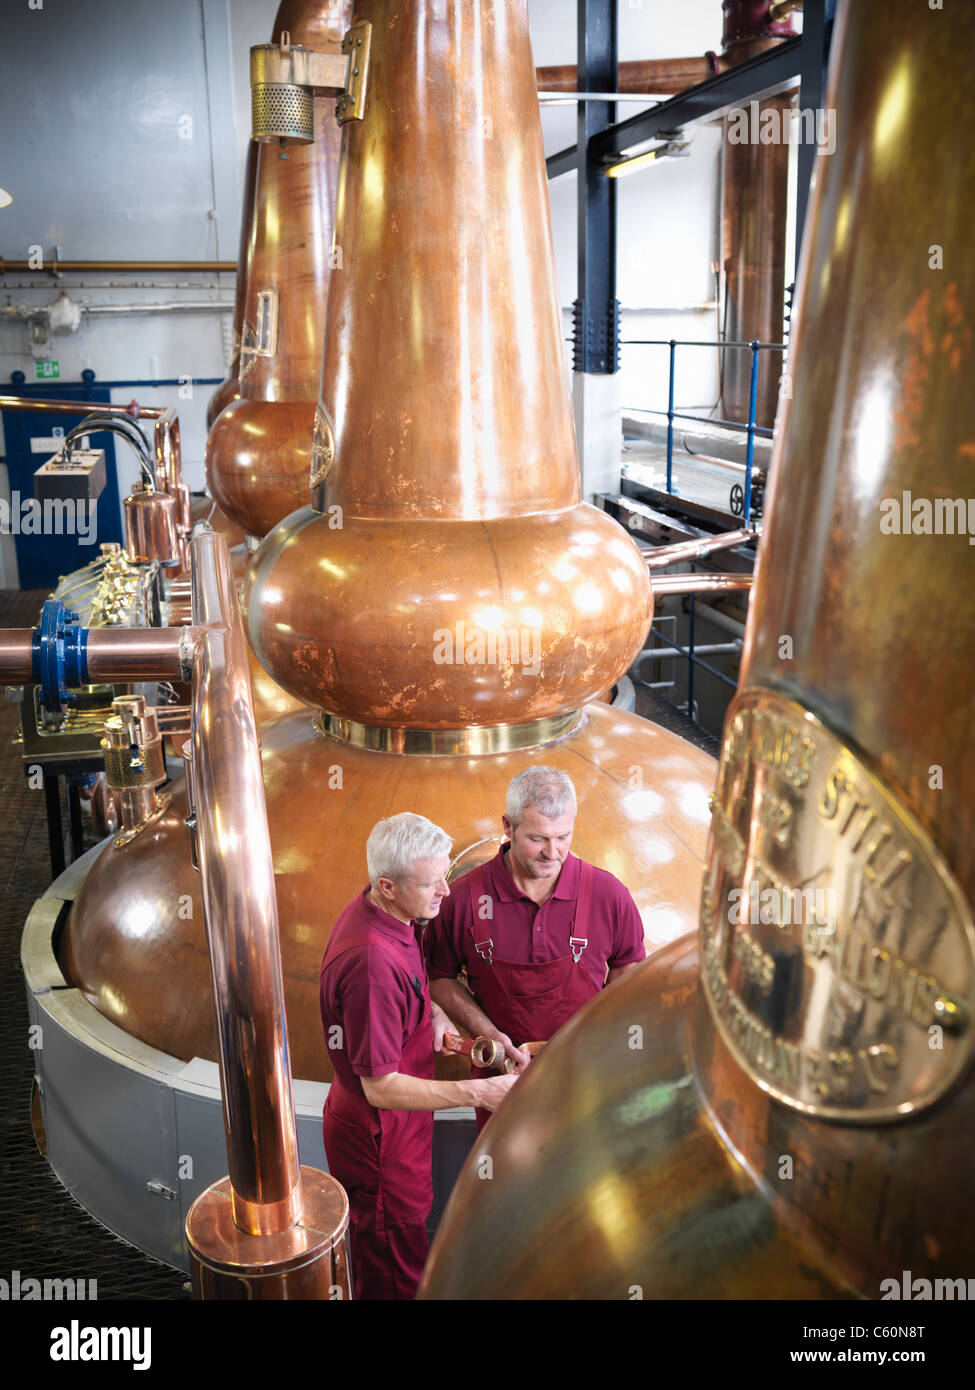 Workers checking stills in distillery - Stock Image